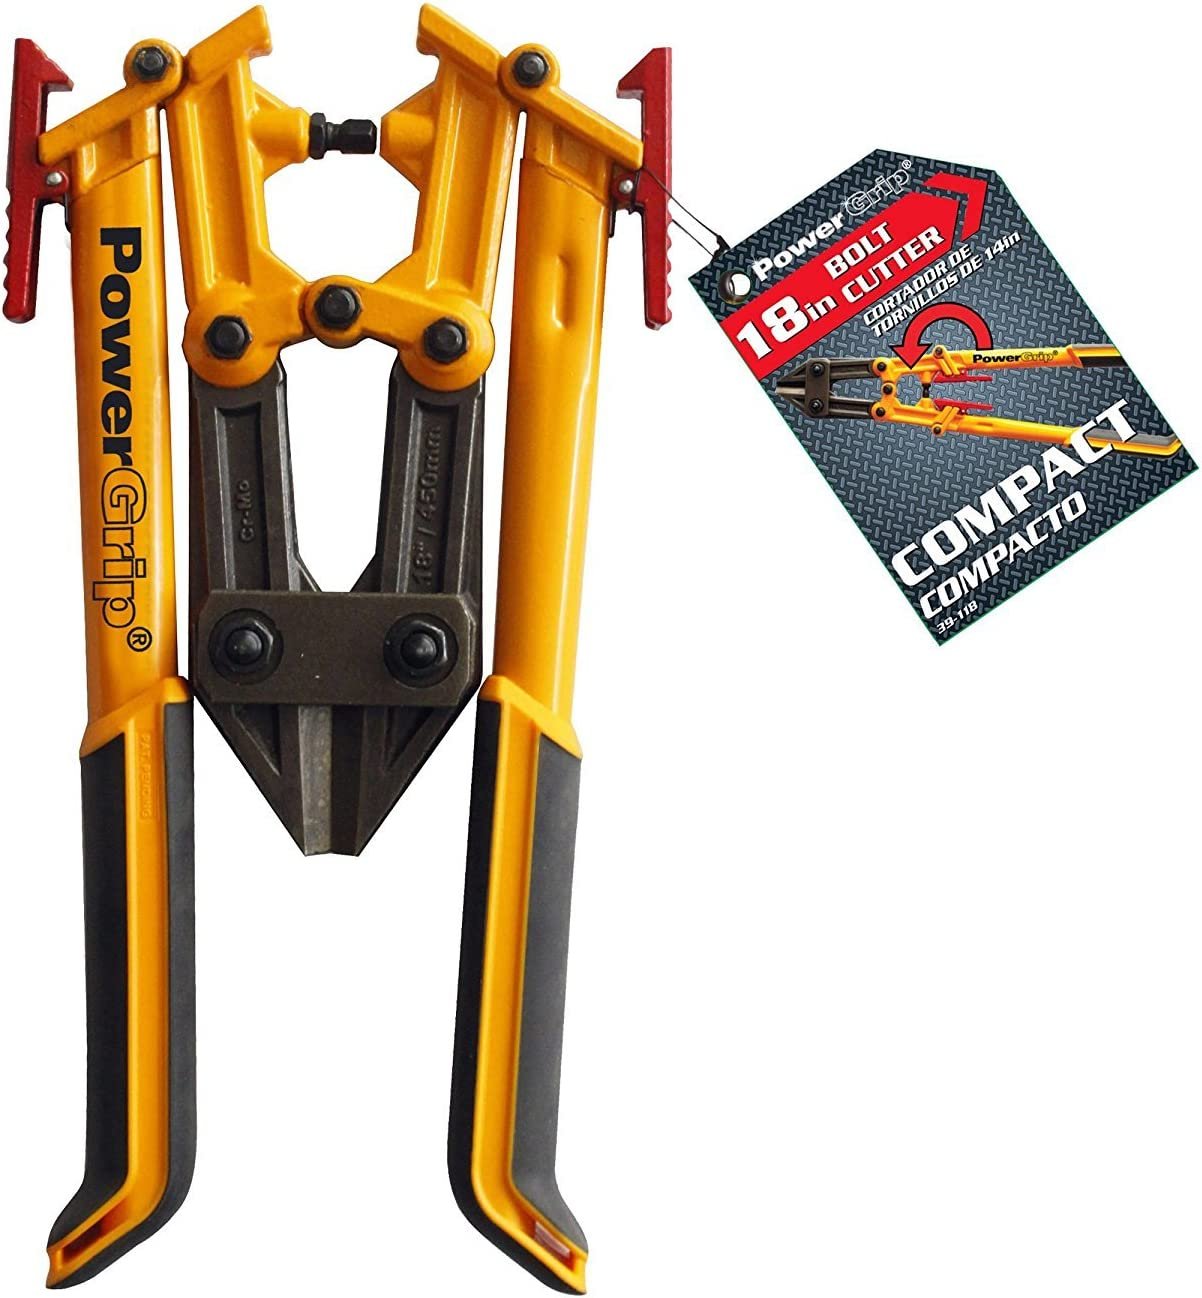 14 Olympia Tools 39-114 Power Grip Bolt Cutter